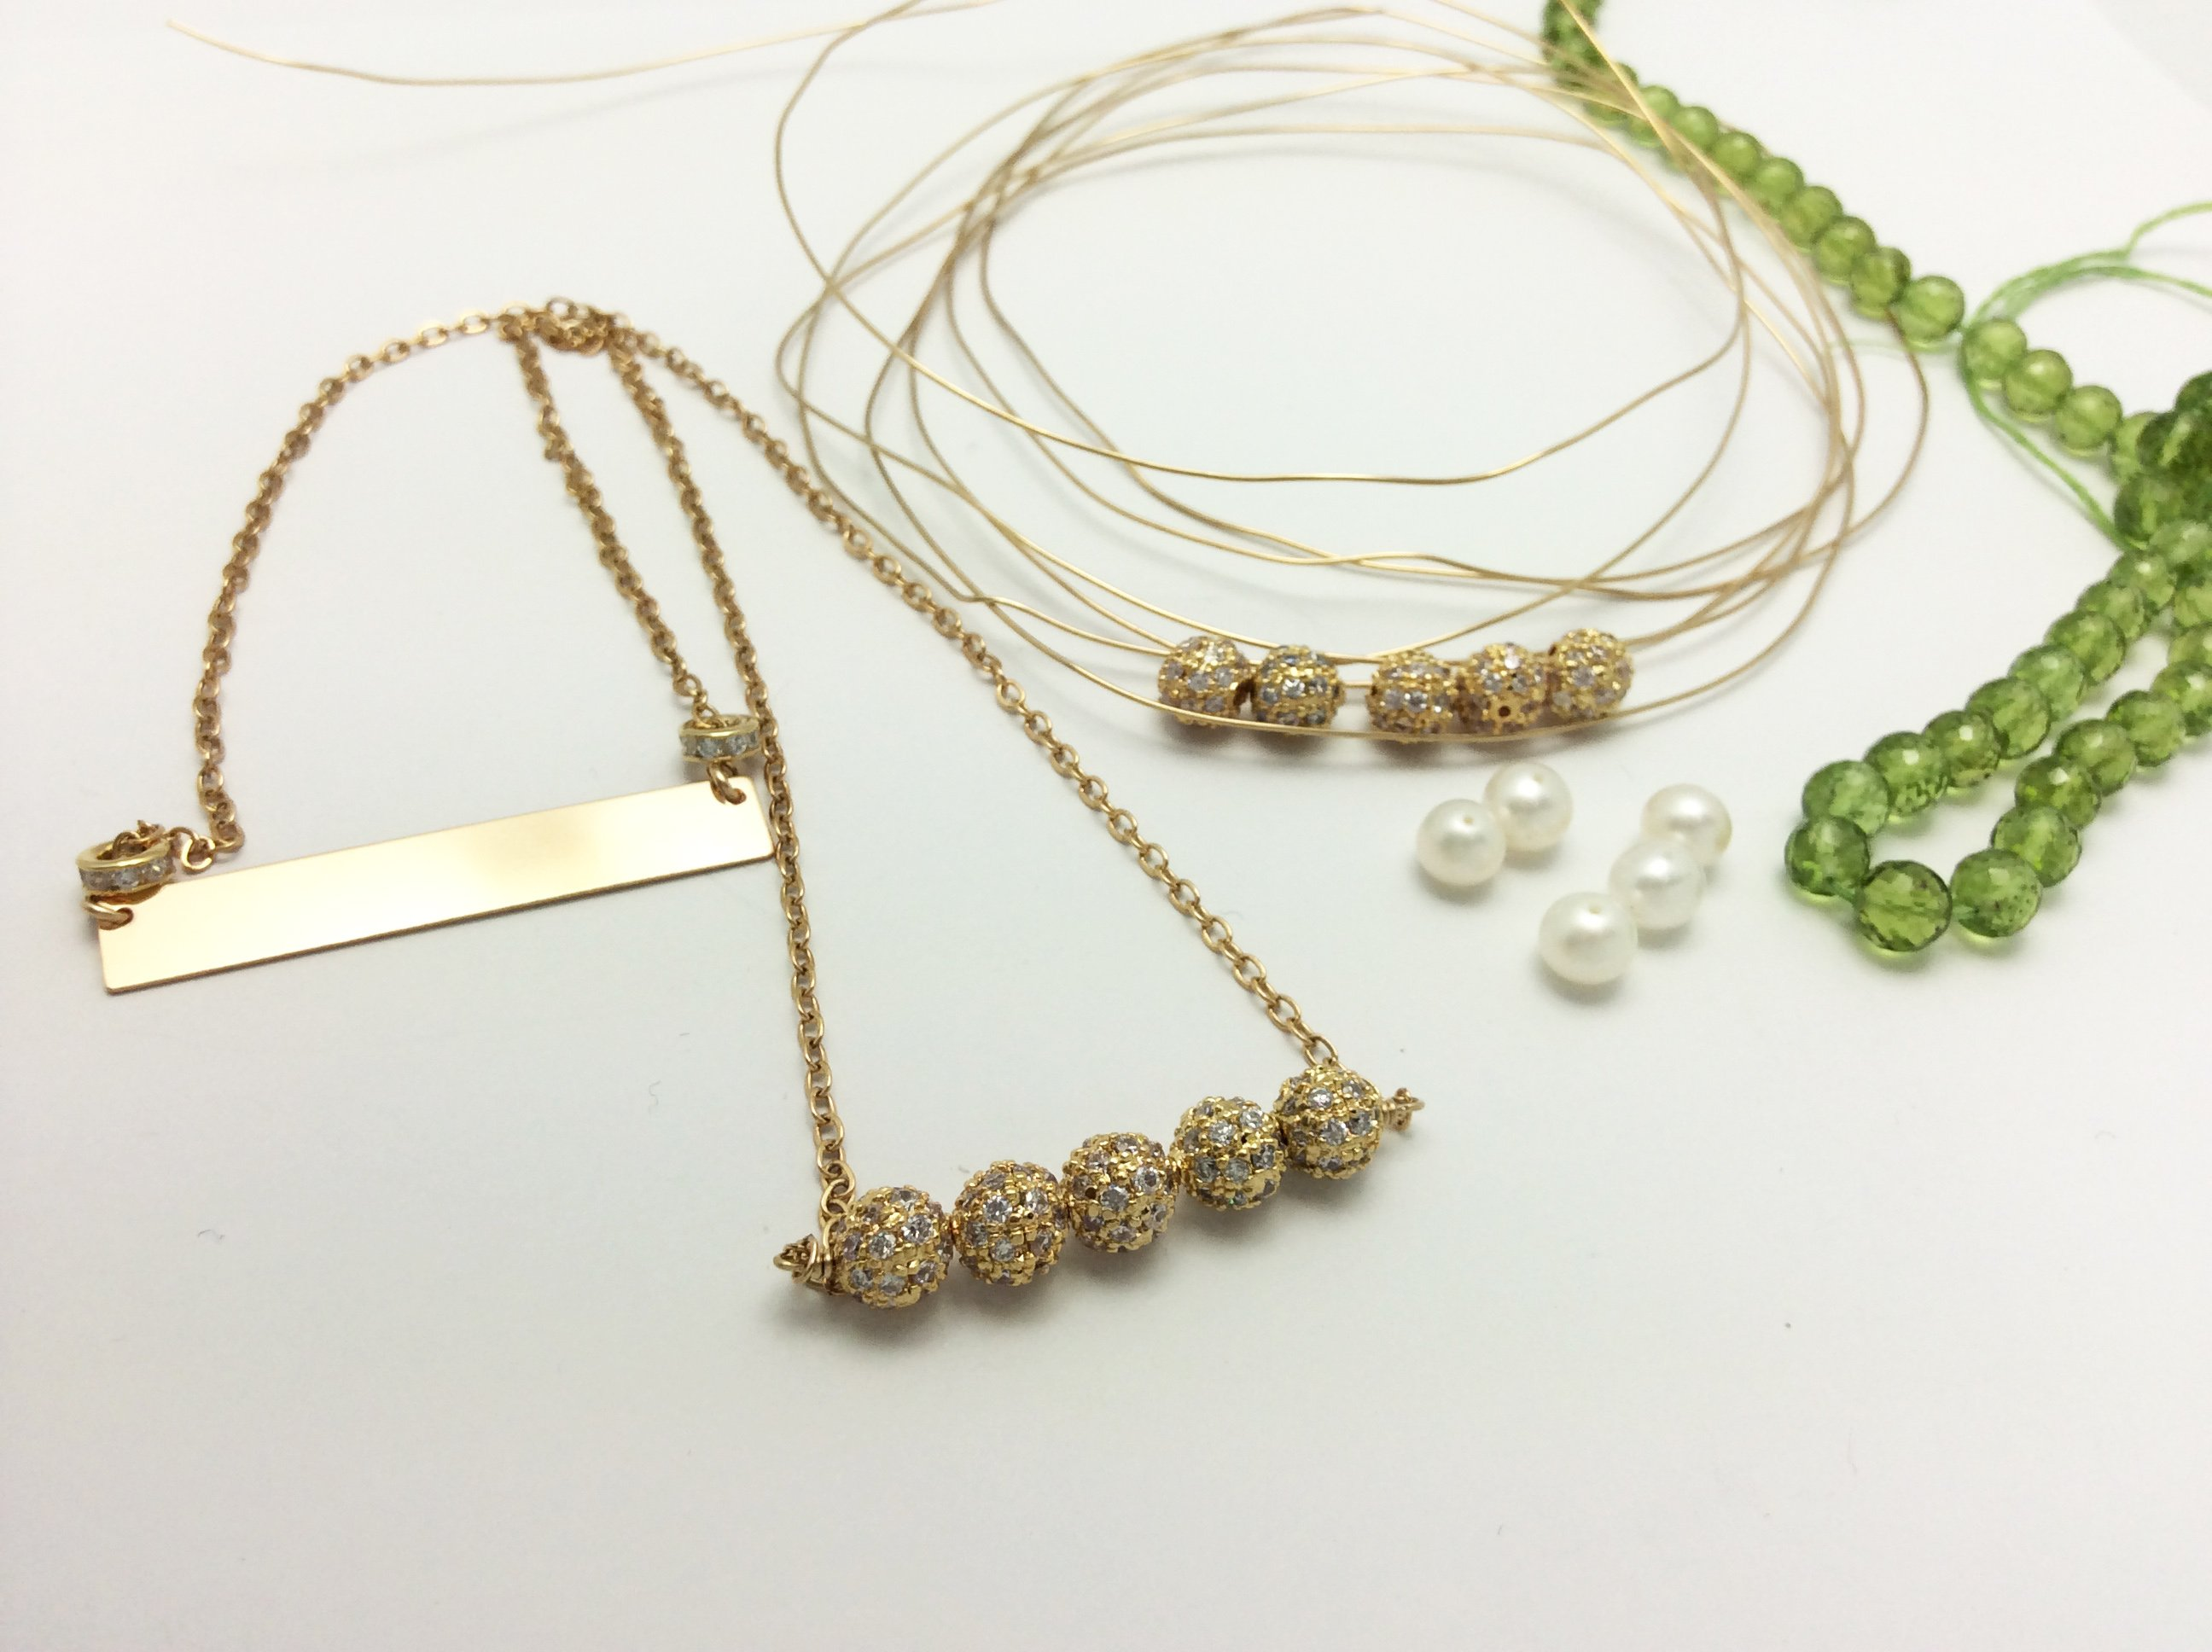 Stand Out Designs Jewelry : How to make bar necklaces that stand out u jewelry design tips